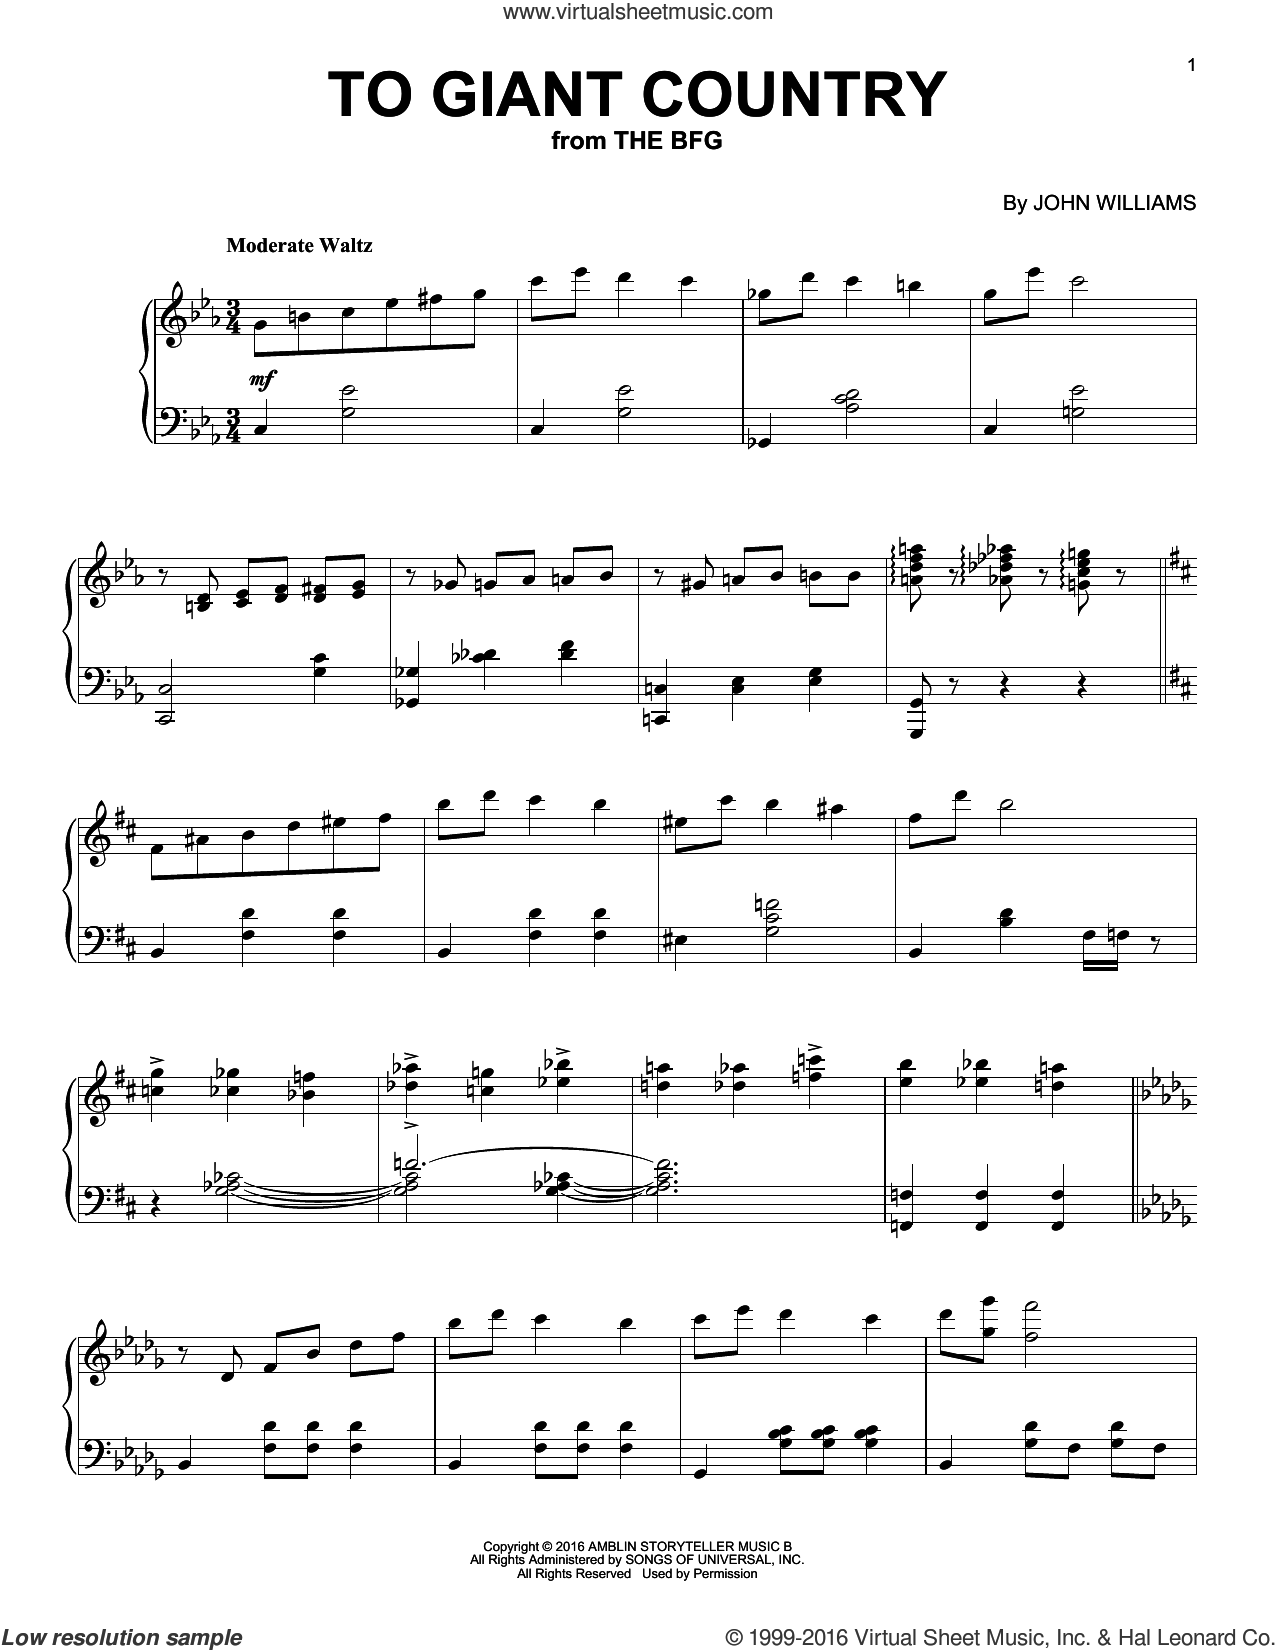 To Giant Country sheet music for piano solo by John Williams. Score Image Preview.